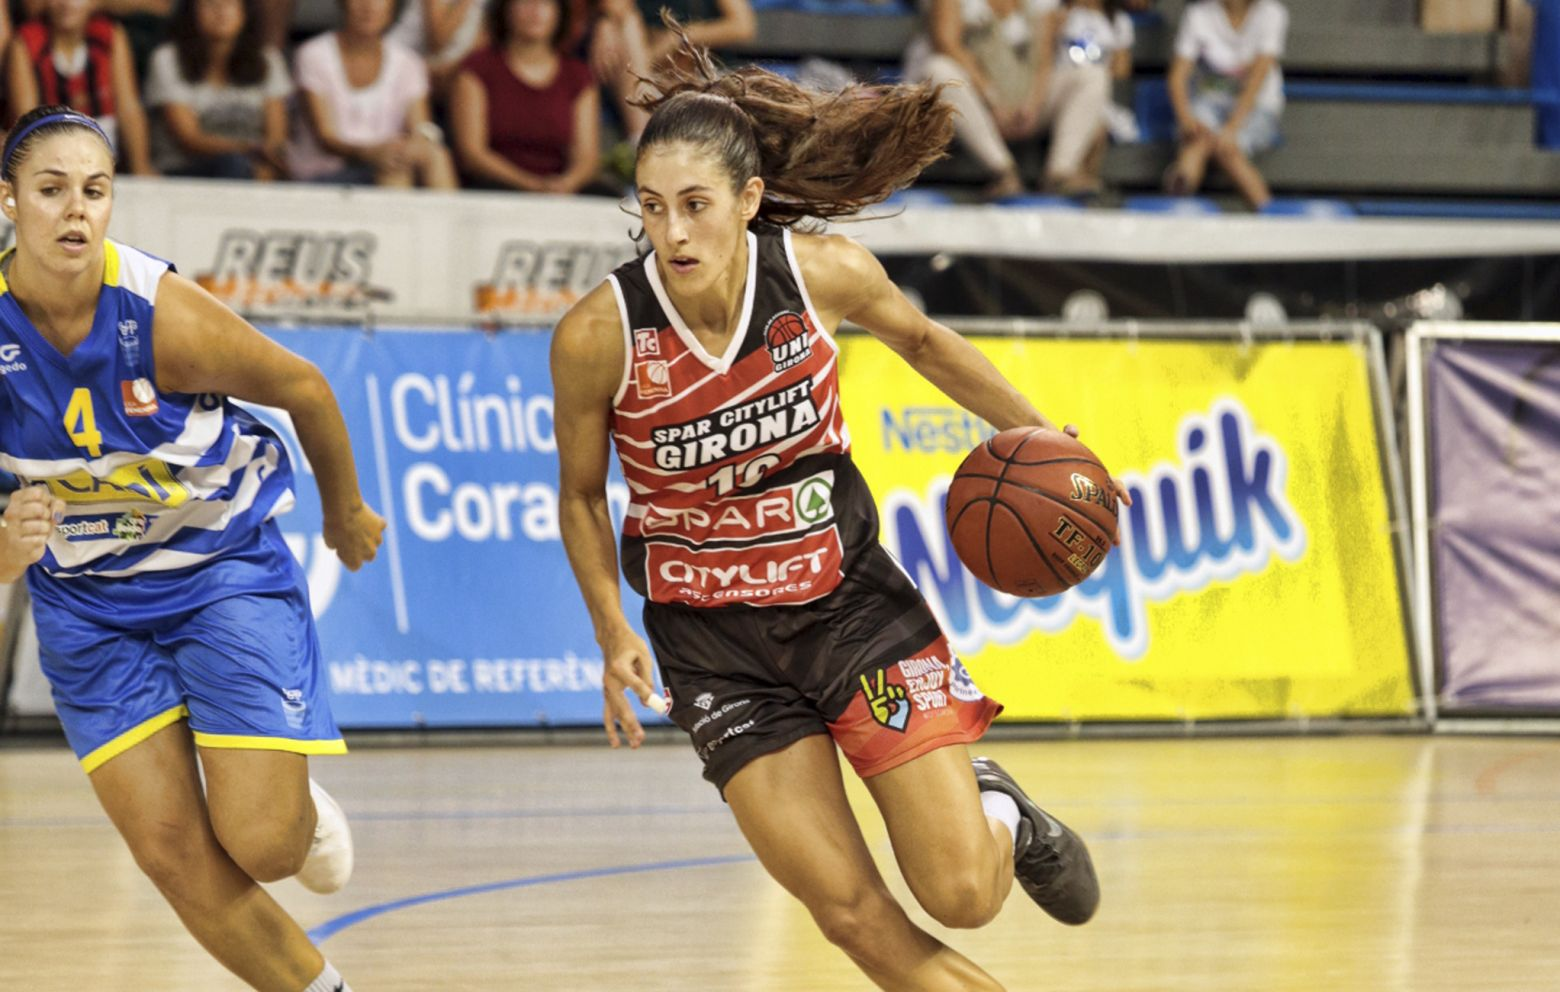 MARÍA CONDE shines with 18 points, 7 rebounds, 5 assists and +29 efficiency against Estudiantes